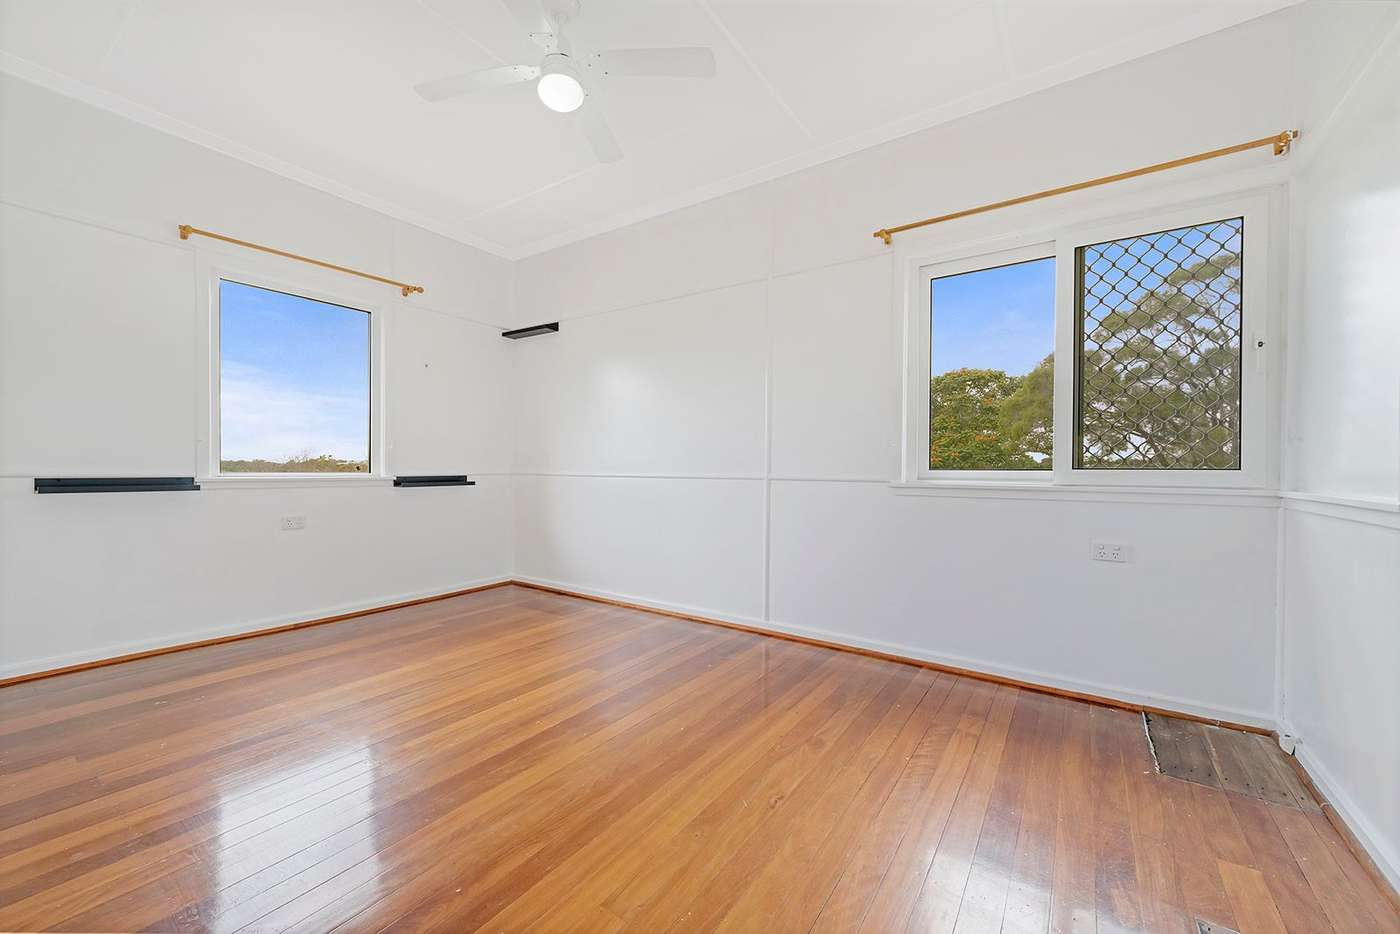 Seventh view of Homely house listing, 55A Thompson Street, Zillmere QLD 4034